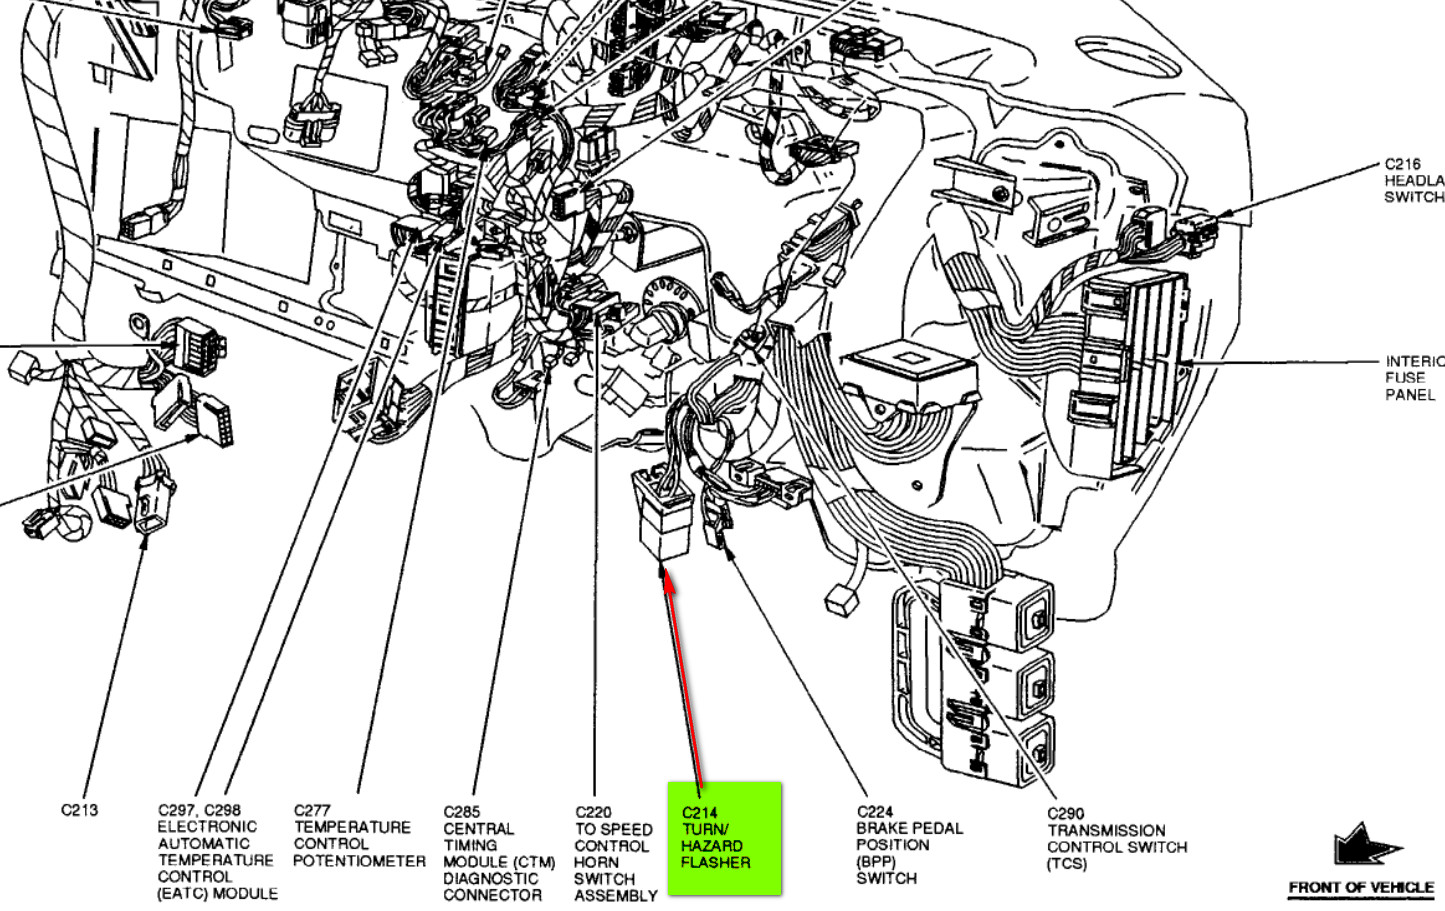 98 Ford Expedition Transmission Wiring Diagram Digital ... F Wiring Diagram on